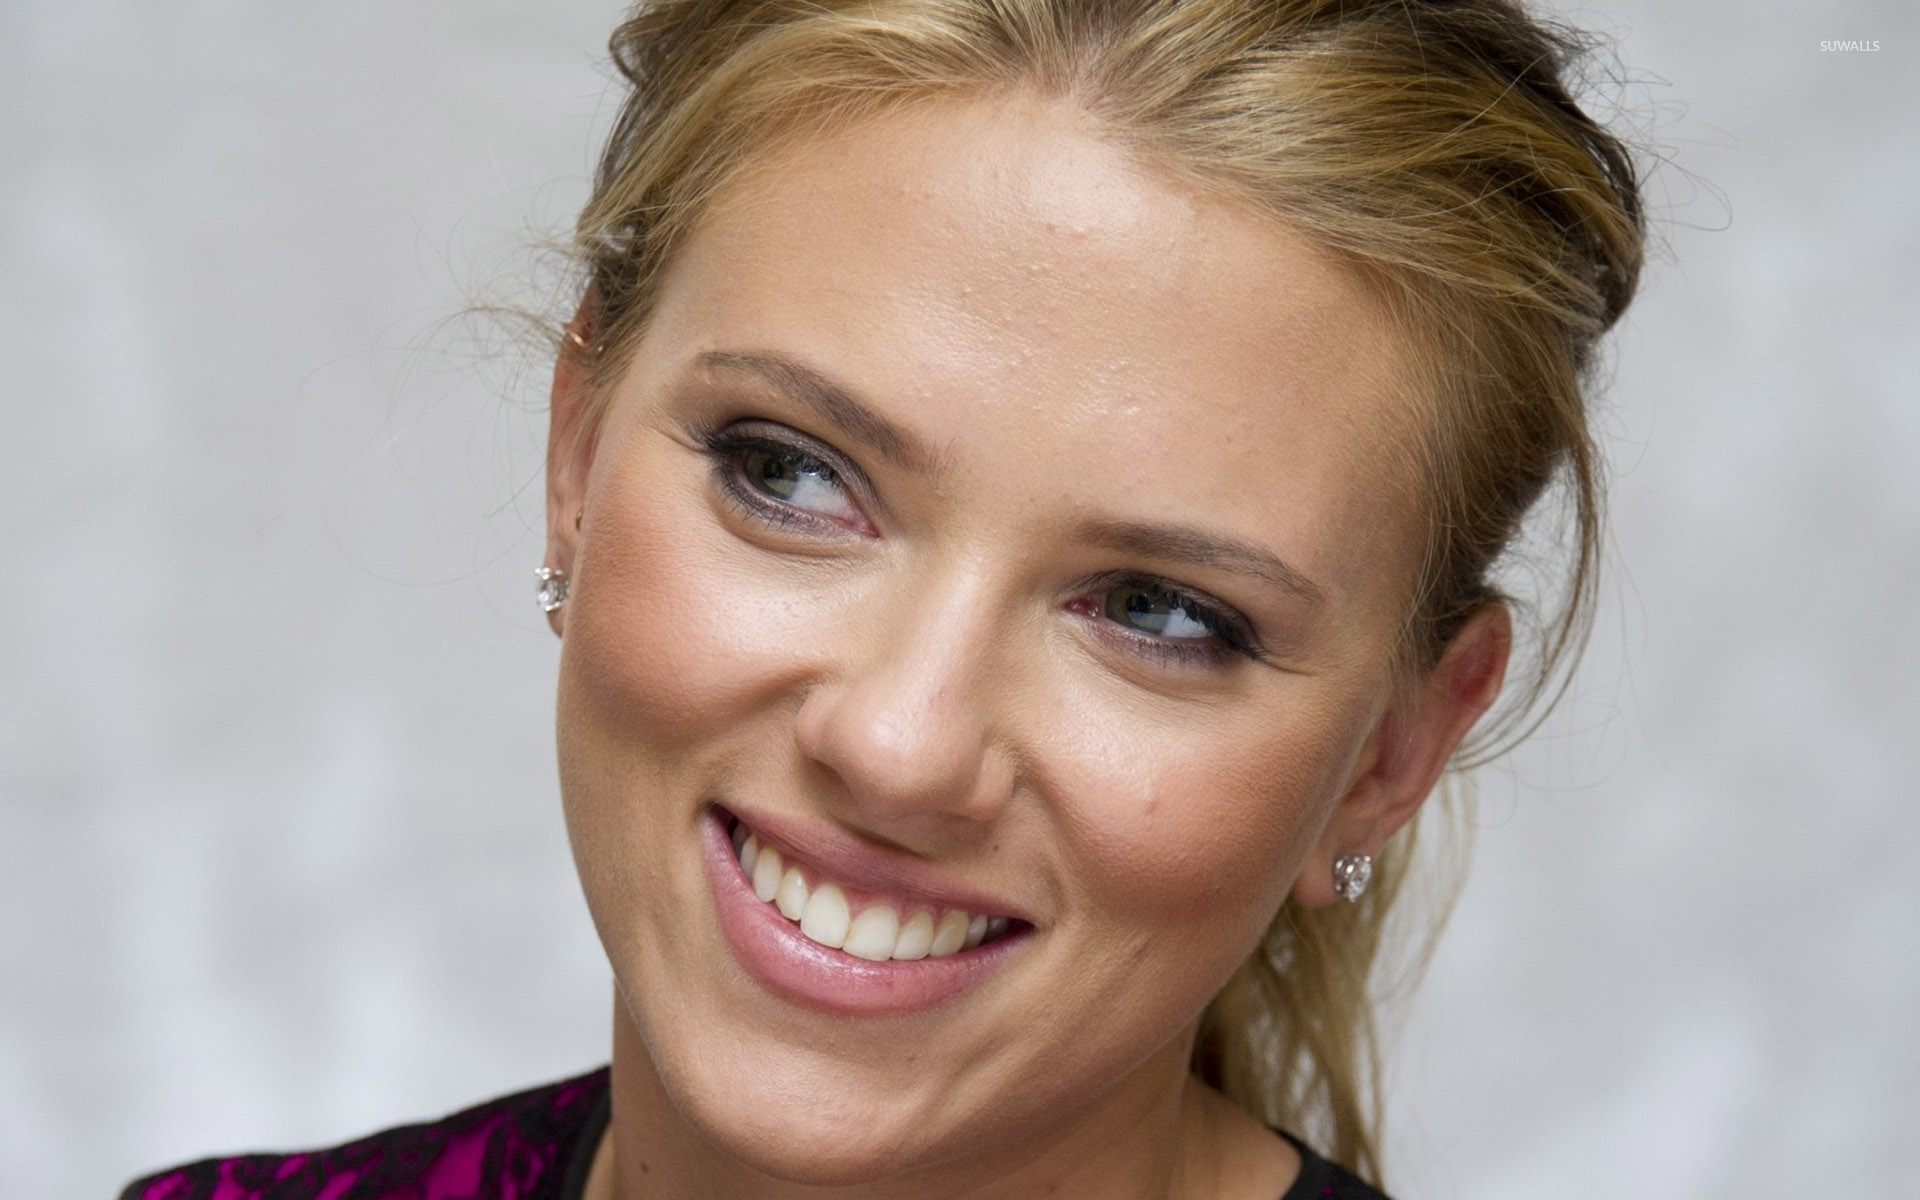 With celebrity scarlett johansson can suggest